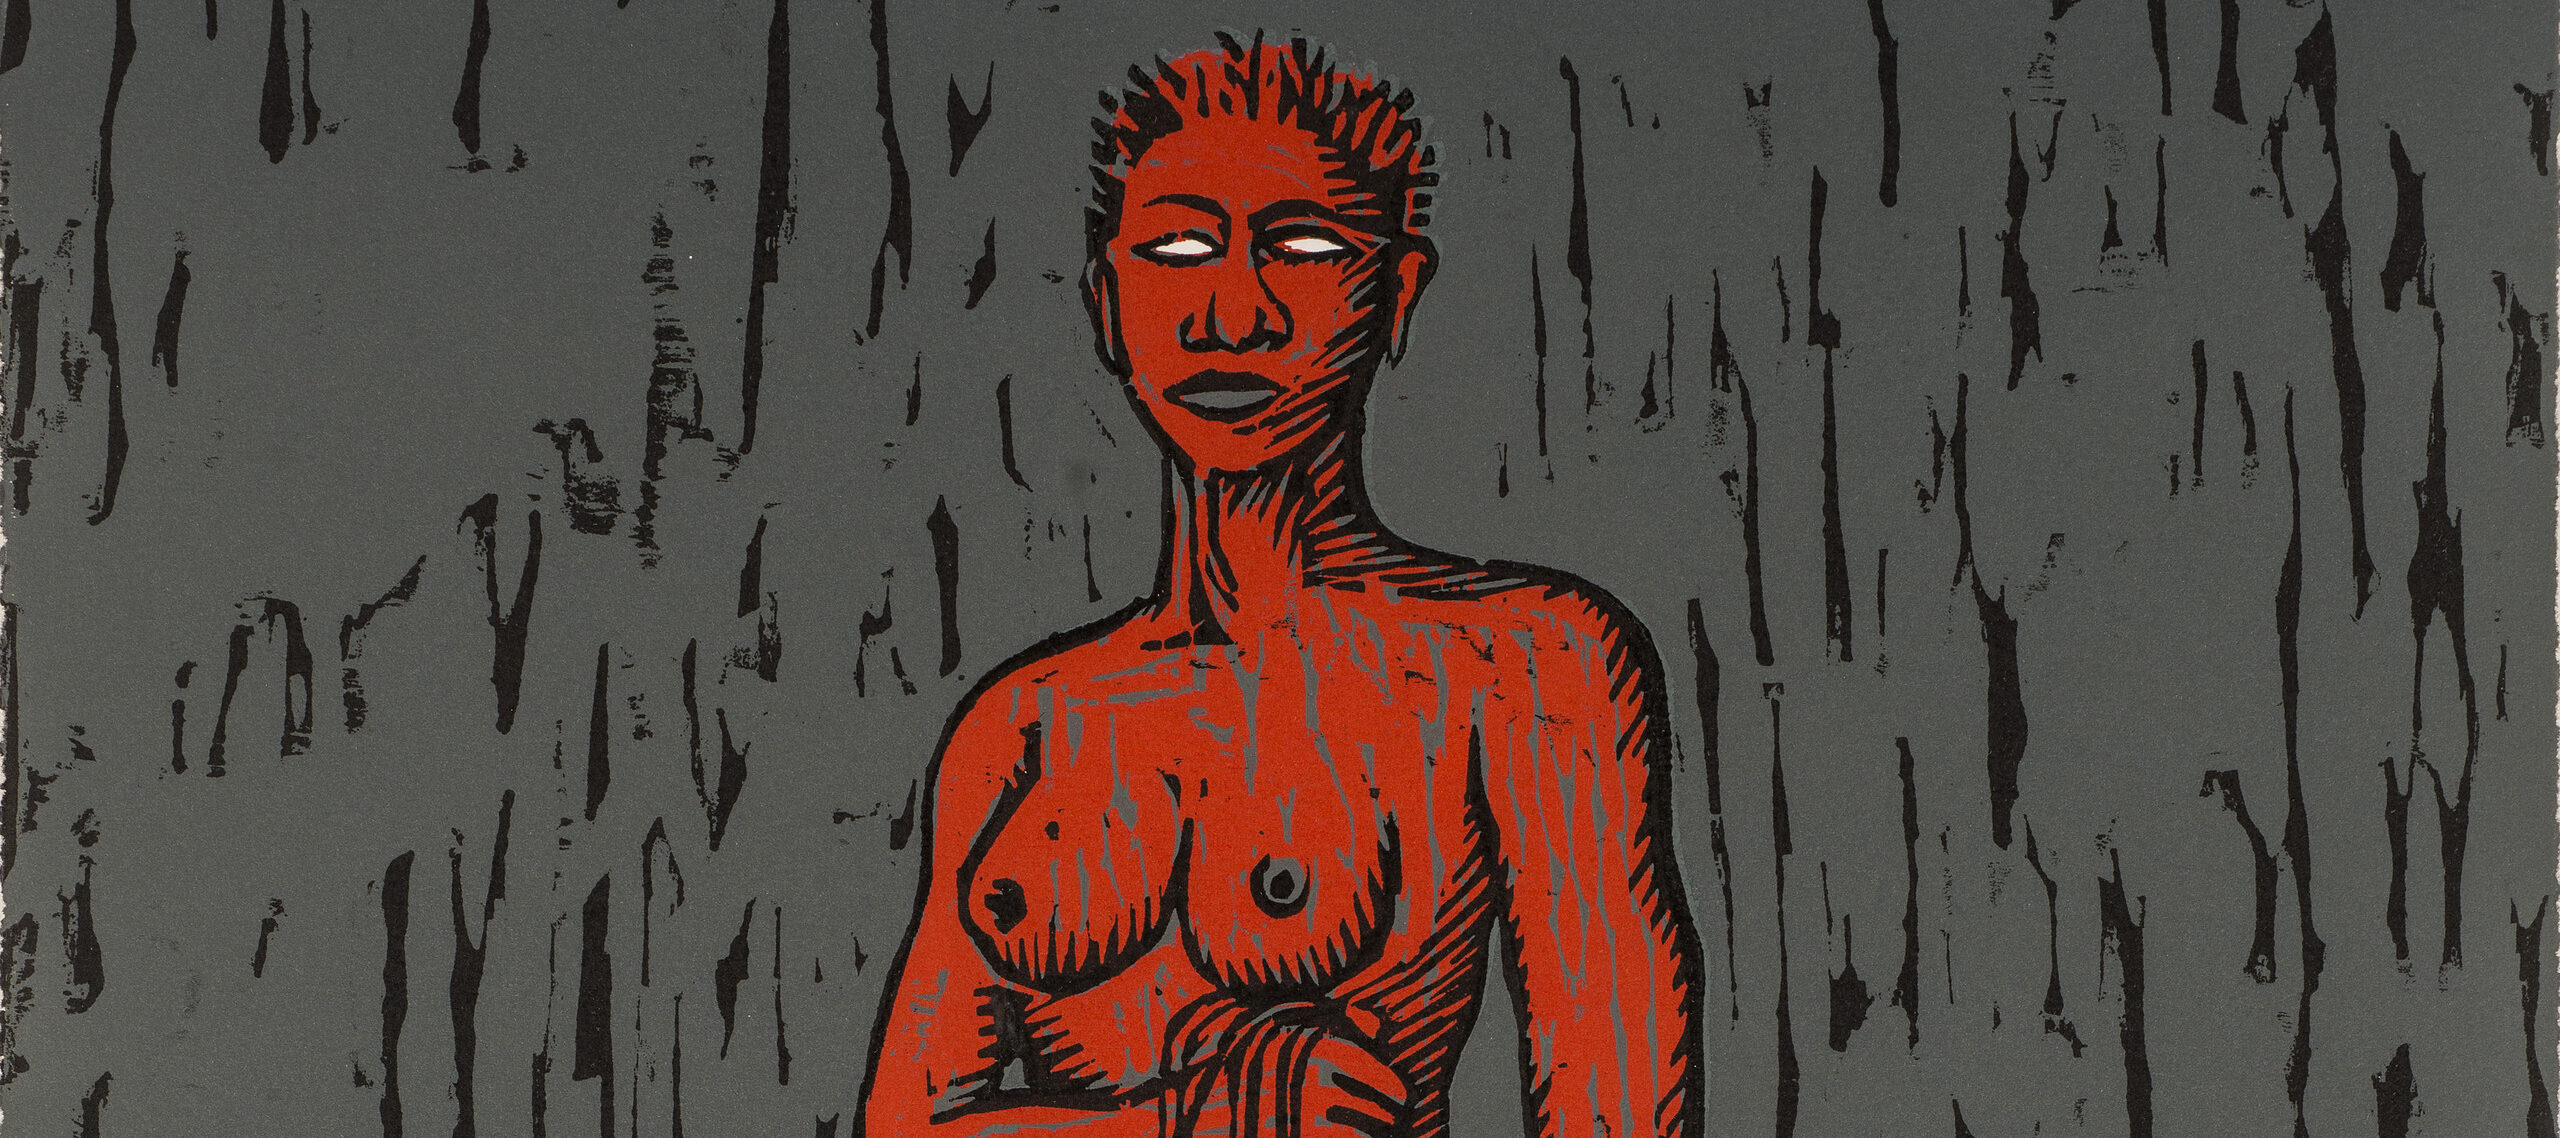 A red, nude, adult female figure with white eyes and short-cropped hair stands in a pile of long, dark hair while holding long strands of dark hair in her right hand. In her left hand is a white blade. The background is gray with choppy, vertical, black lines.